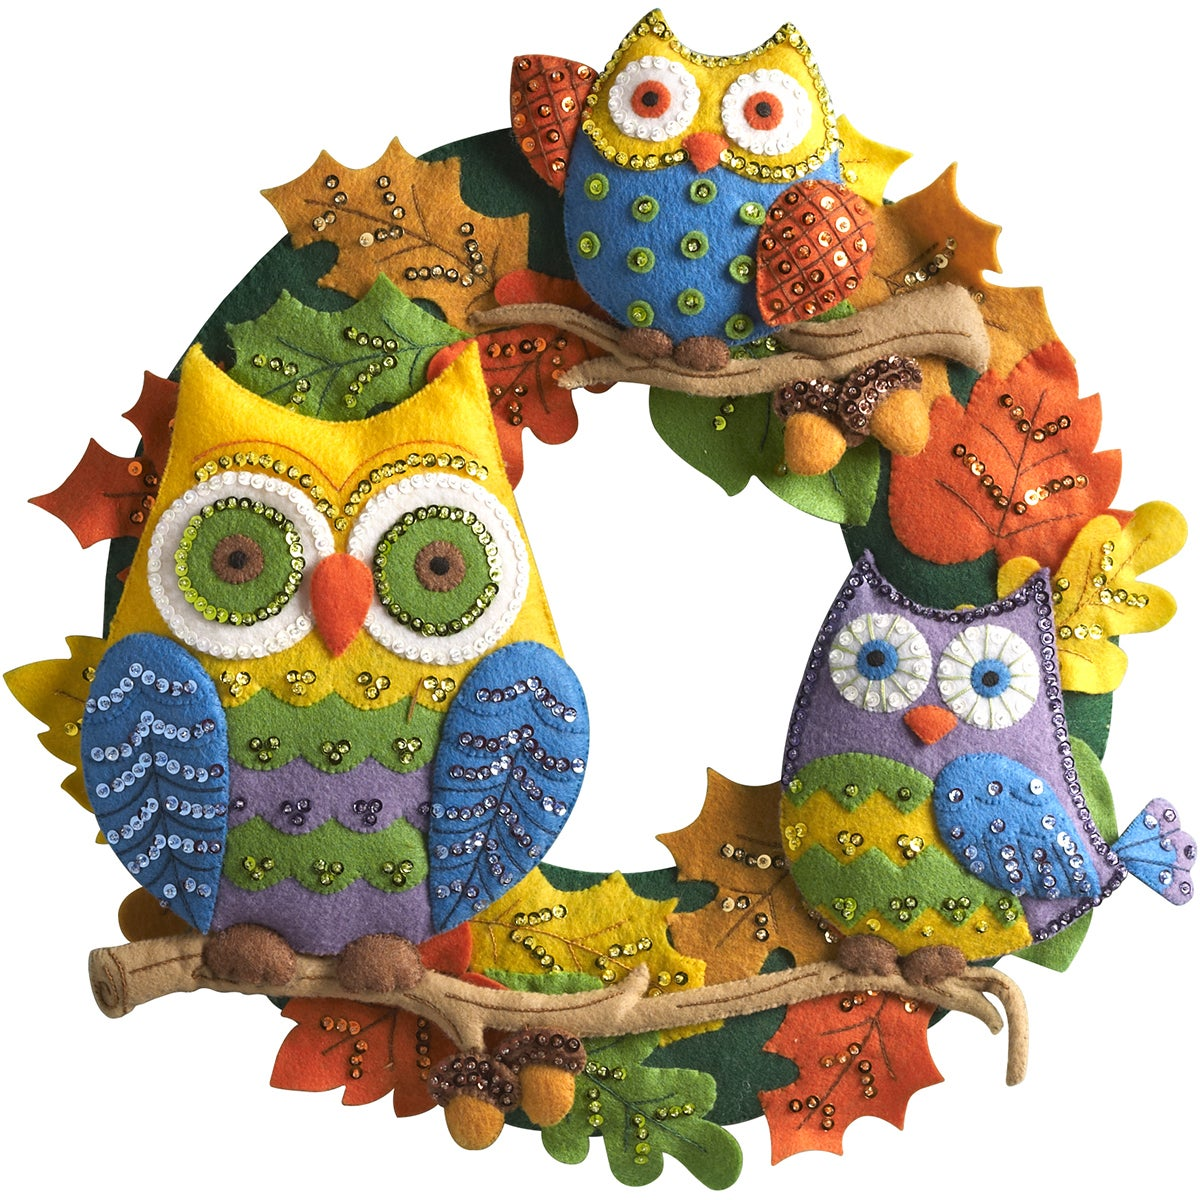 "Bucilla Owl Wreath Felt Applique Kit-17"" Round (17"" Round)"